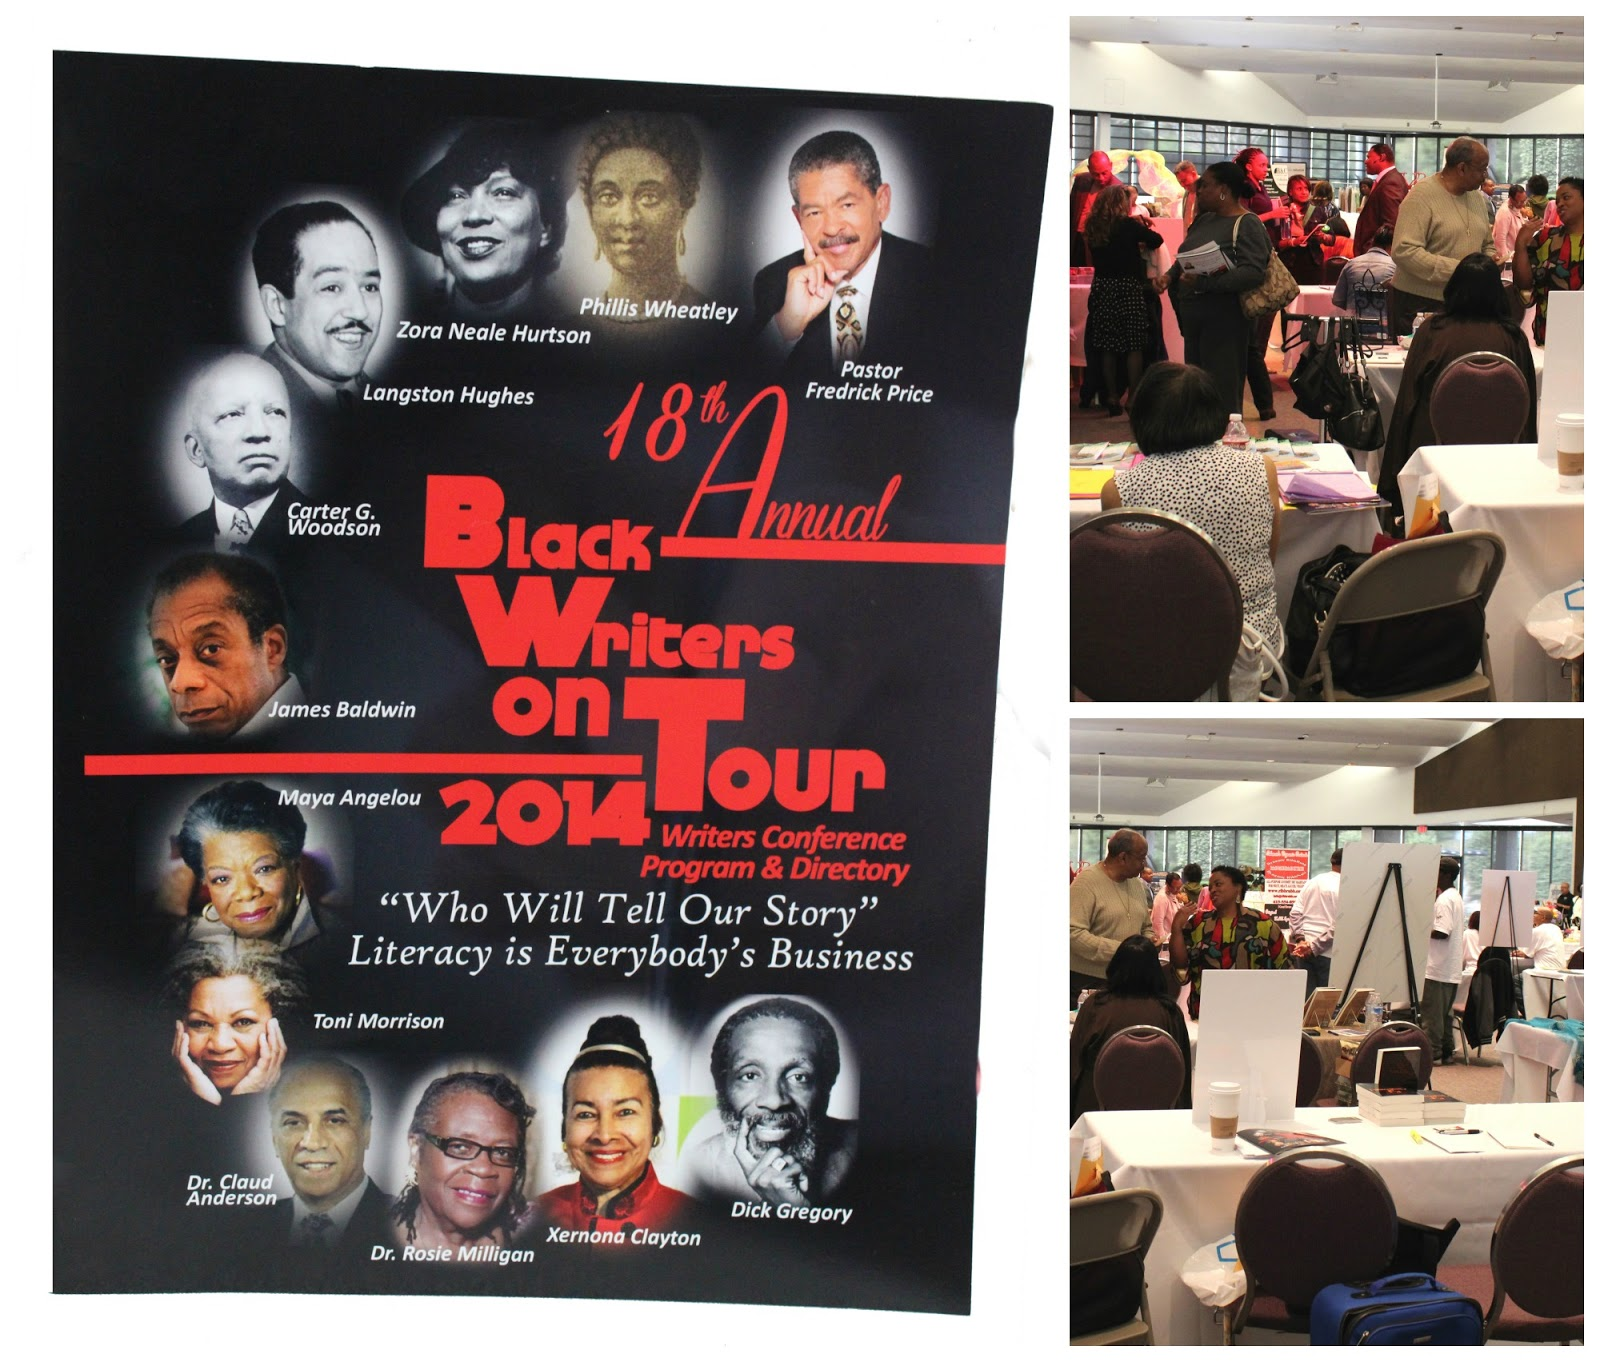 18th Annual Black Writers on Tour Conference